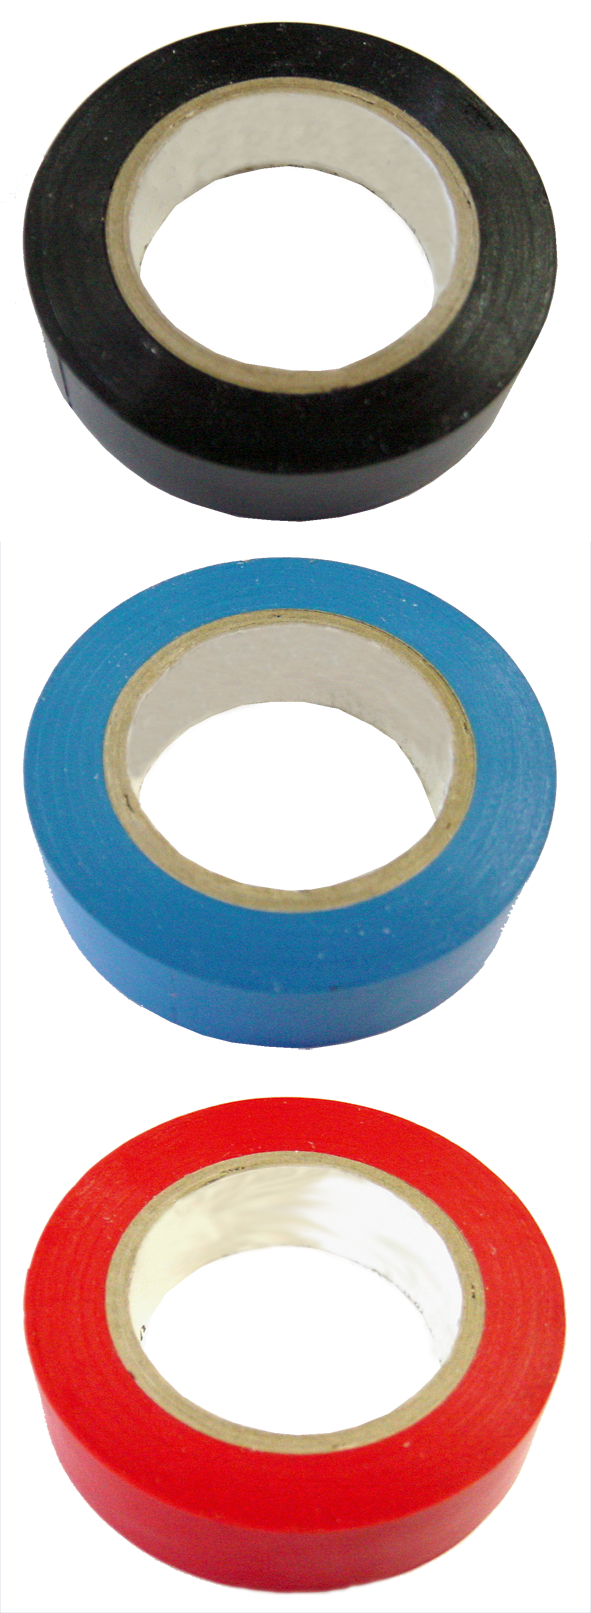 INSULATING TAPE IB 1015 RD